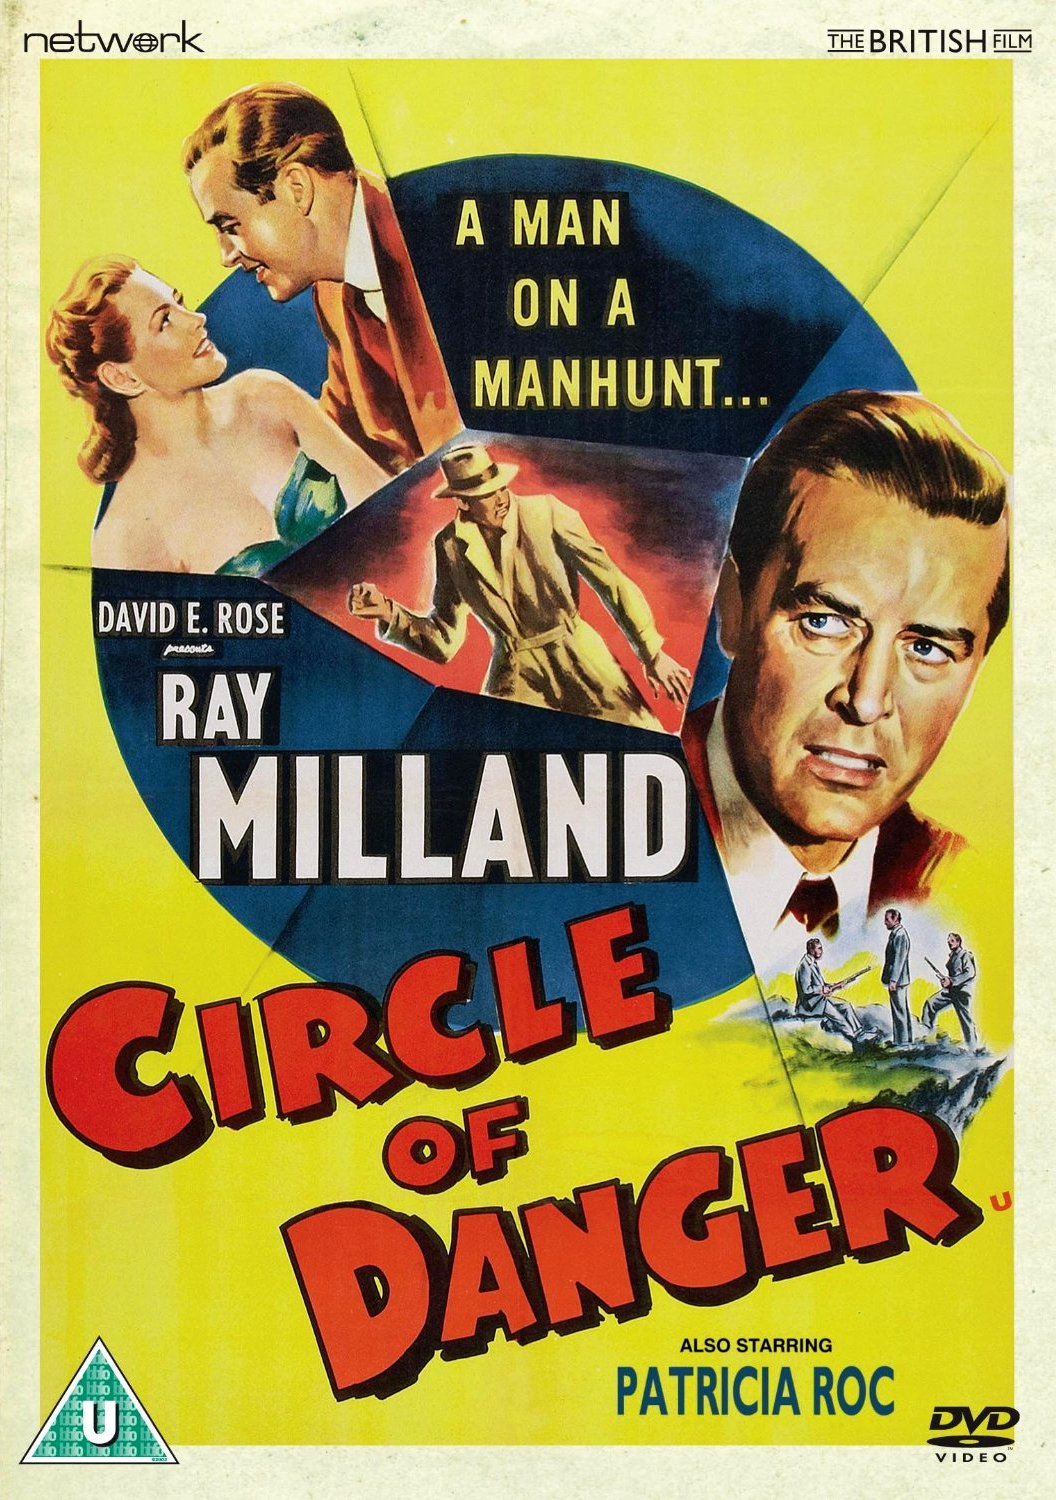 Circle of Danger DVD from Network and The British Film.  Features Ray Milland, Patricia Roc and David E. Rose.